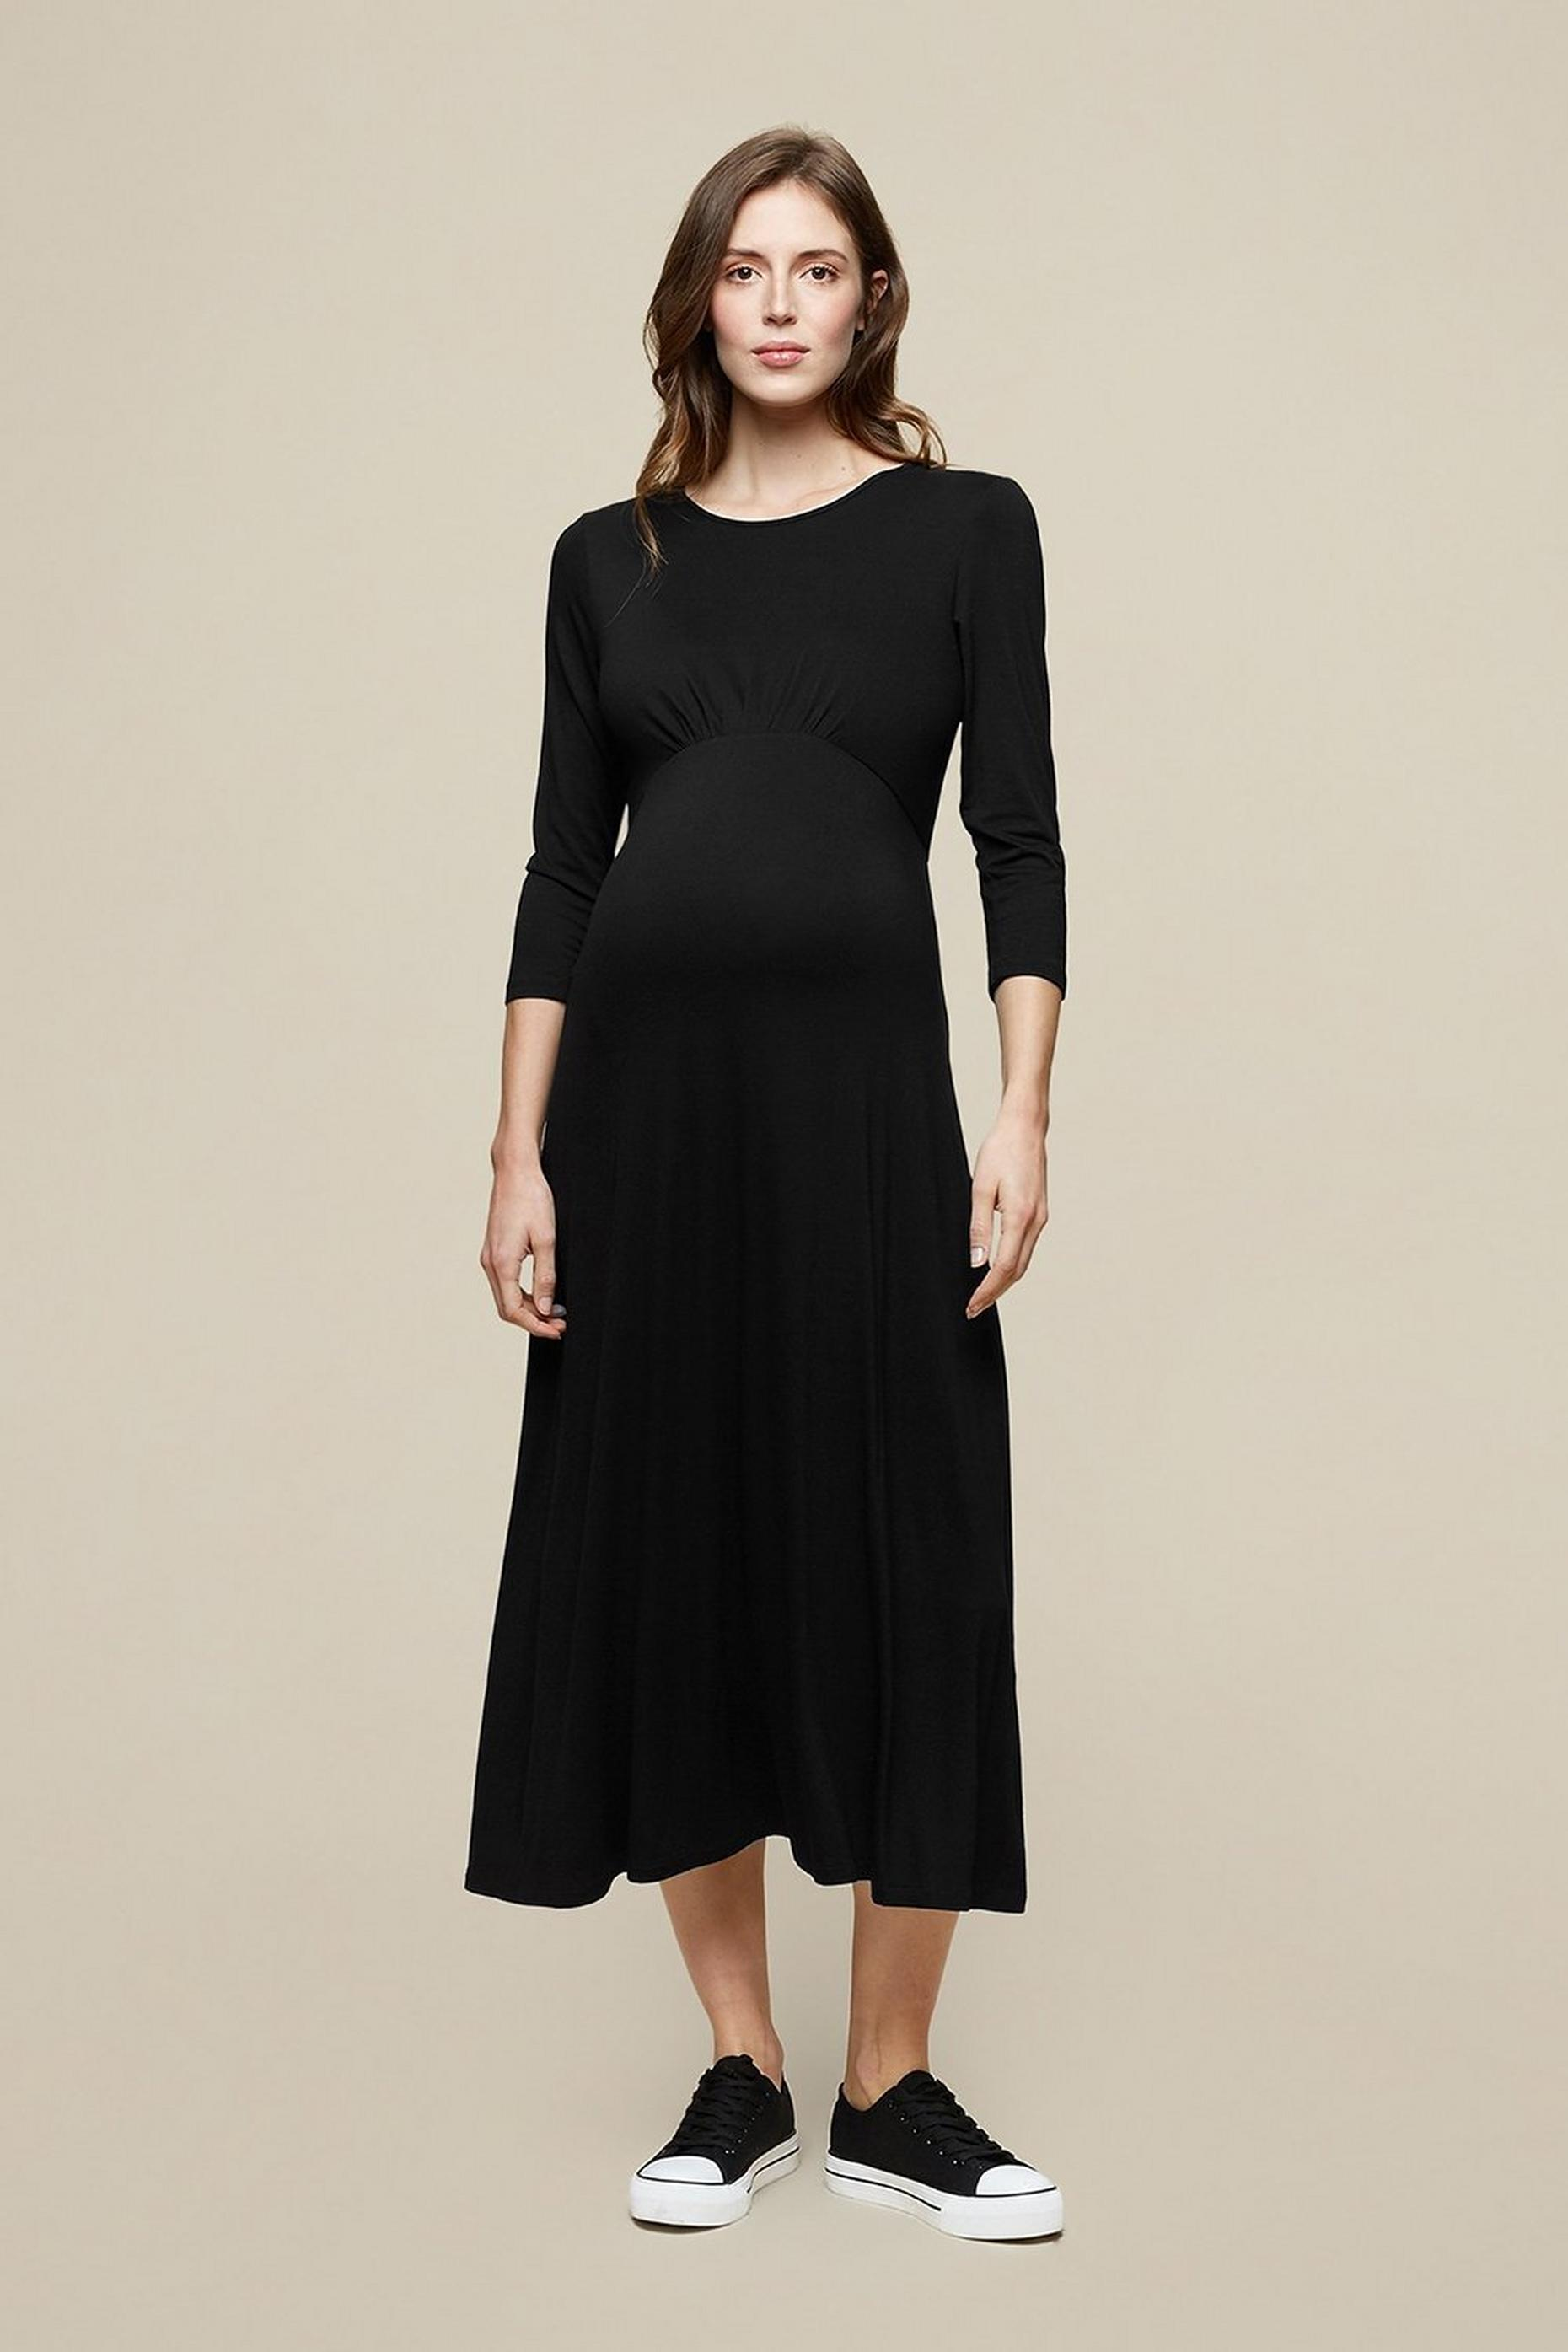 Maternity Black Three Quarter Sleeve Dress